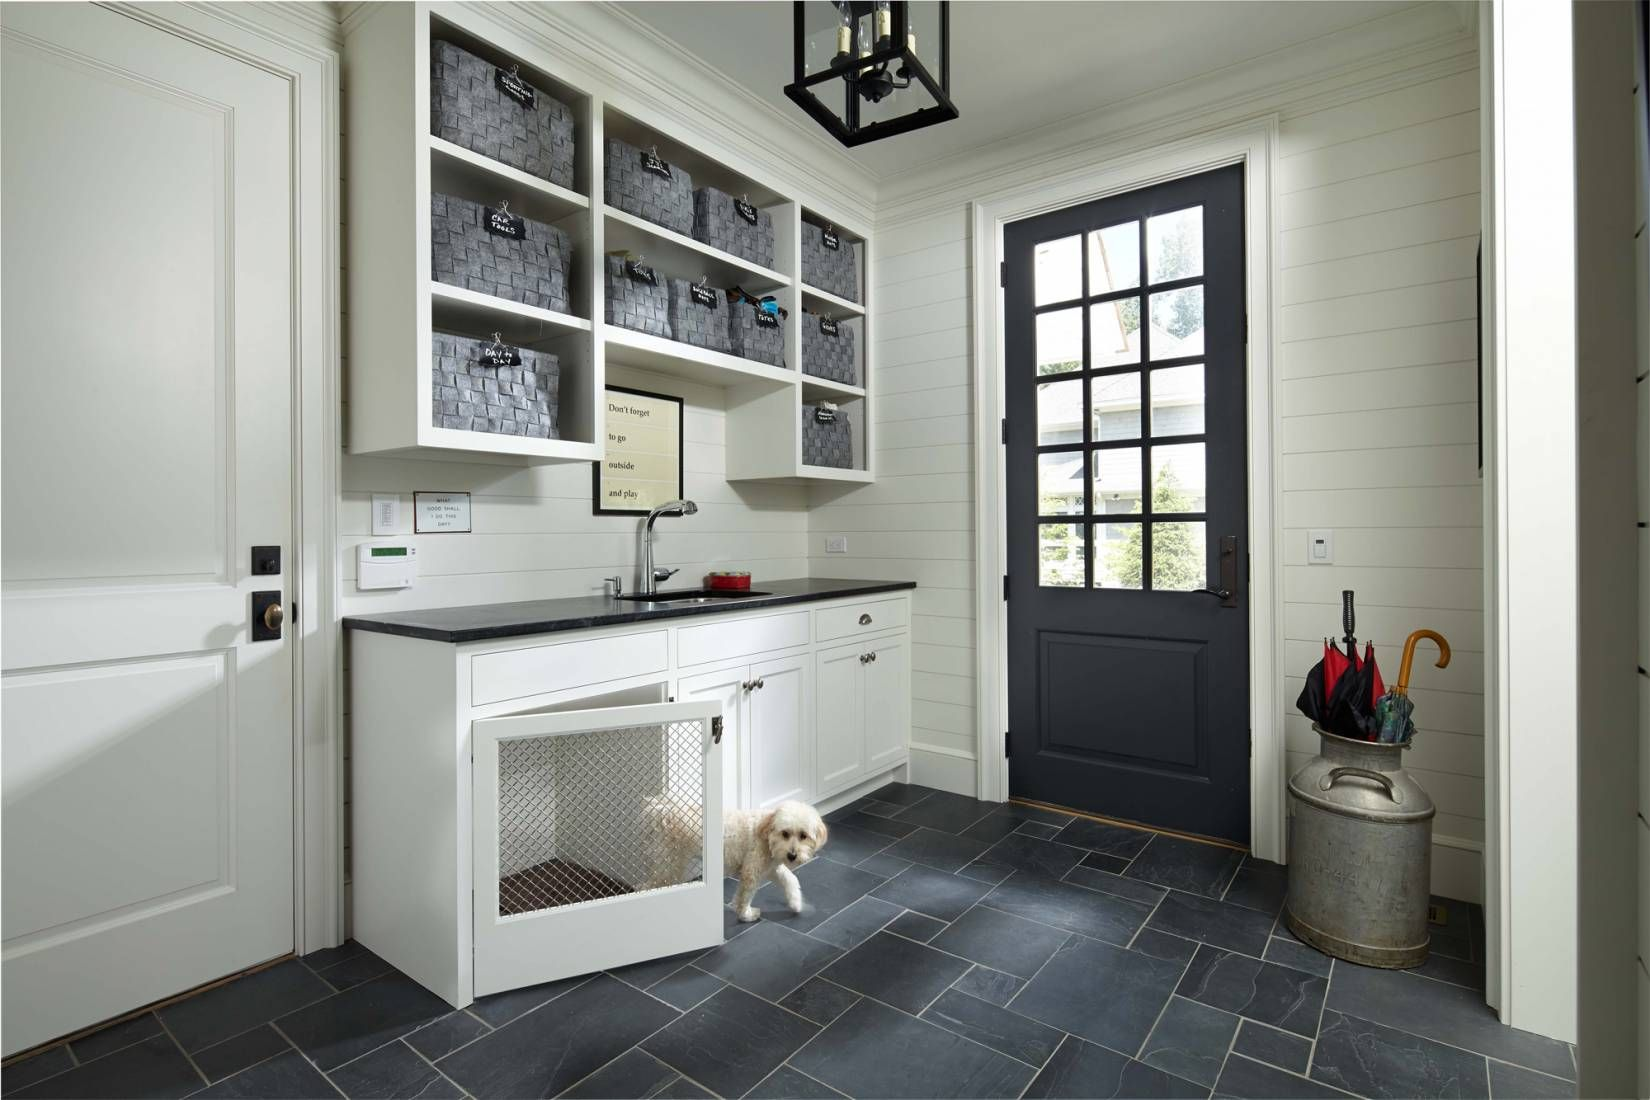 pet crate in cabinet - Murphy & Co Design | Minneapolis Residential Architectural Design